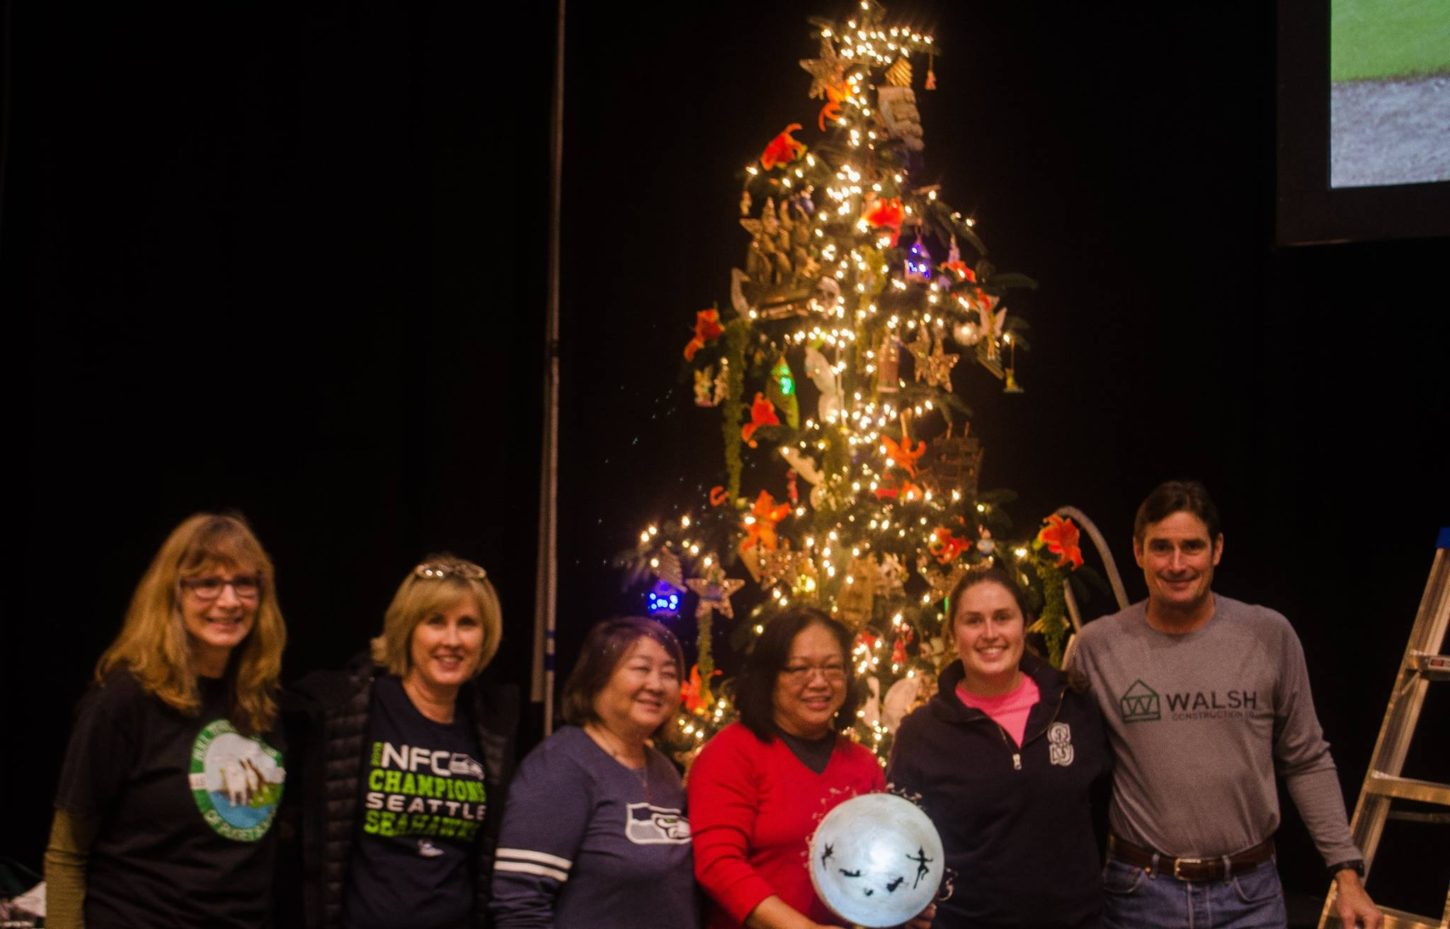 walsh sponsors a tree for providences o christmas trees event